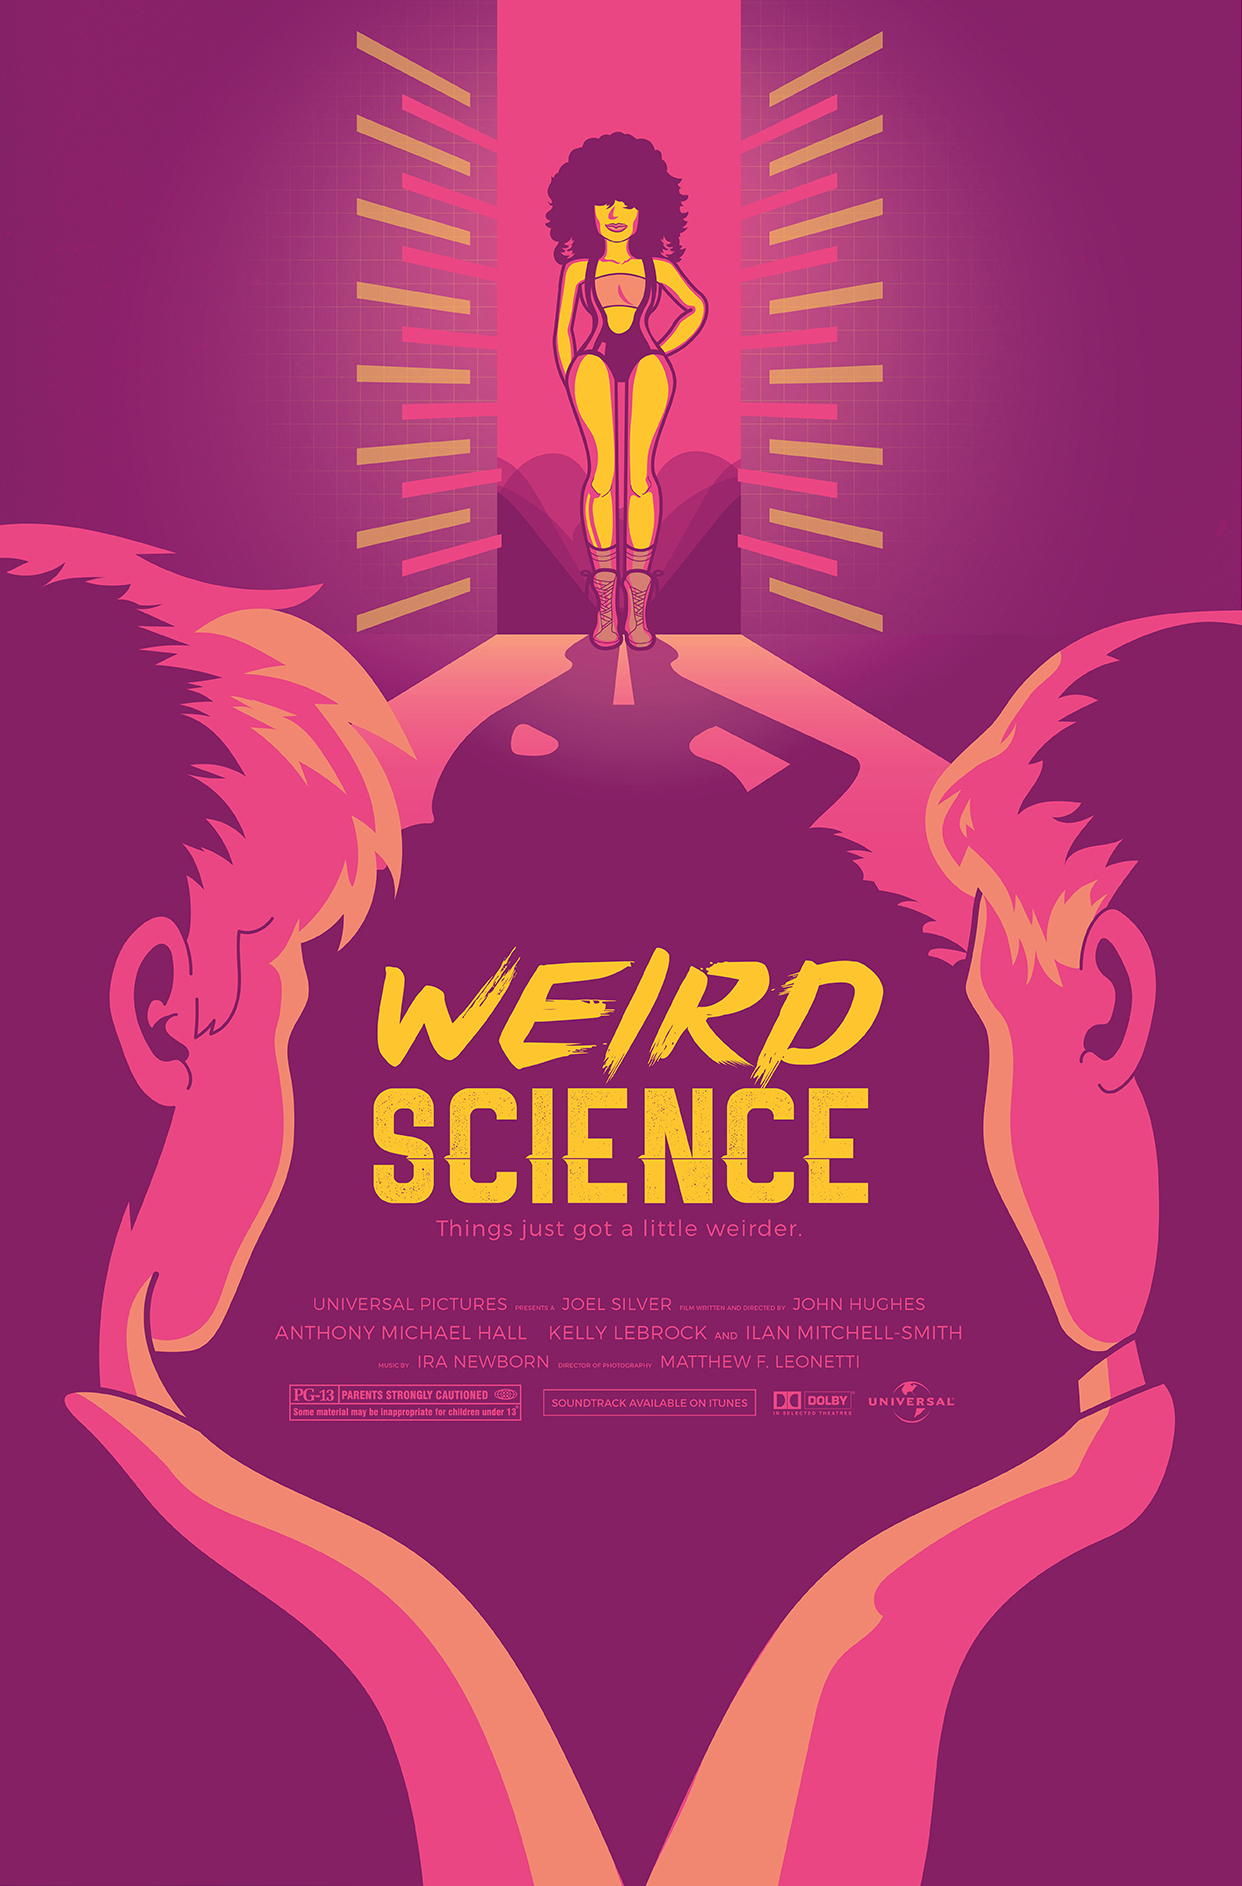 Weird Science Movie Poster - I was given an 80's movie at random. The concept was to incorporate iconic imagery from the movie while keeping a 3 spot color maximum. While I disagreed with the writer's oversexualizing the female lead, I tried to use her sexual prowess to emphaszie her power, and mystery rather than weaken through oversexualization.